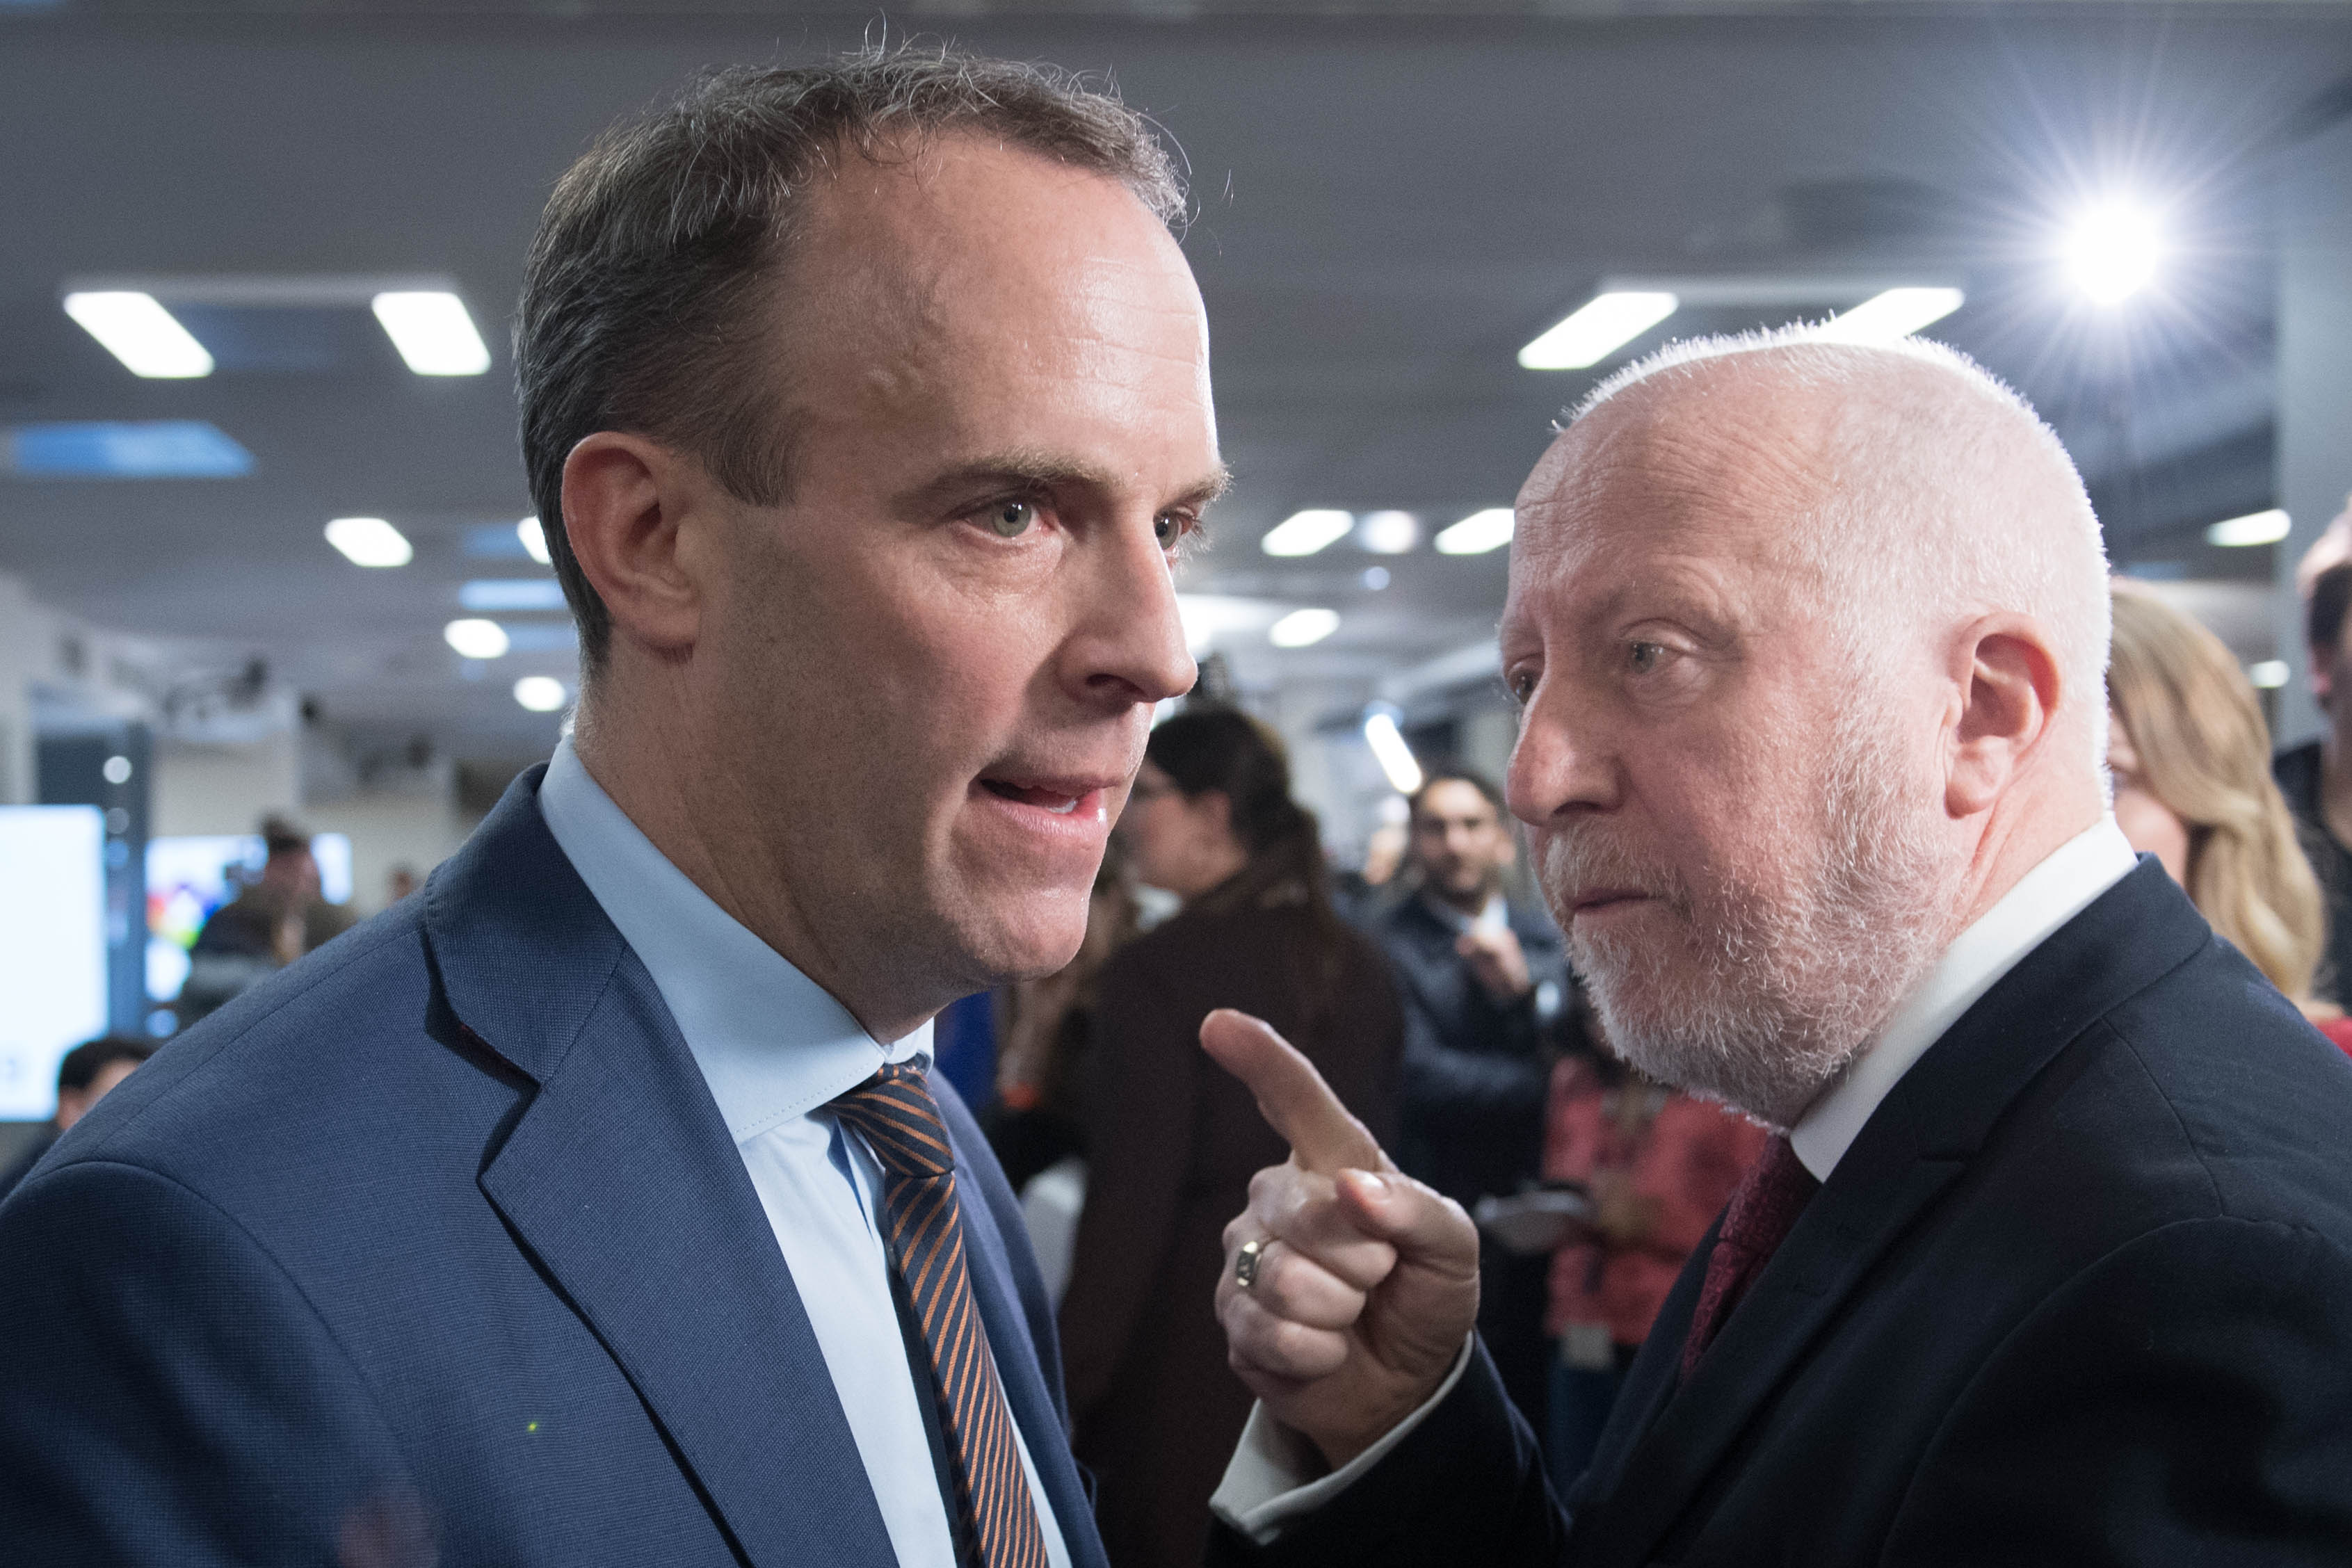 Foreign Secretary Dominic Raab (left) and shadow transport secretary Andy McDonald exchange views at the Octagon in Sheffield, South Yorkshire, after leaders of four major parties took part in the BBC Question Time Leaders' Special.